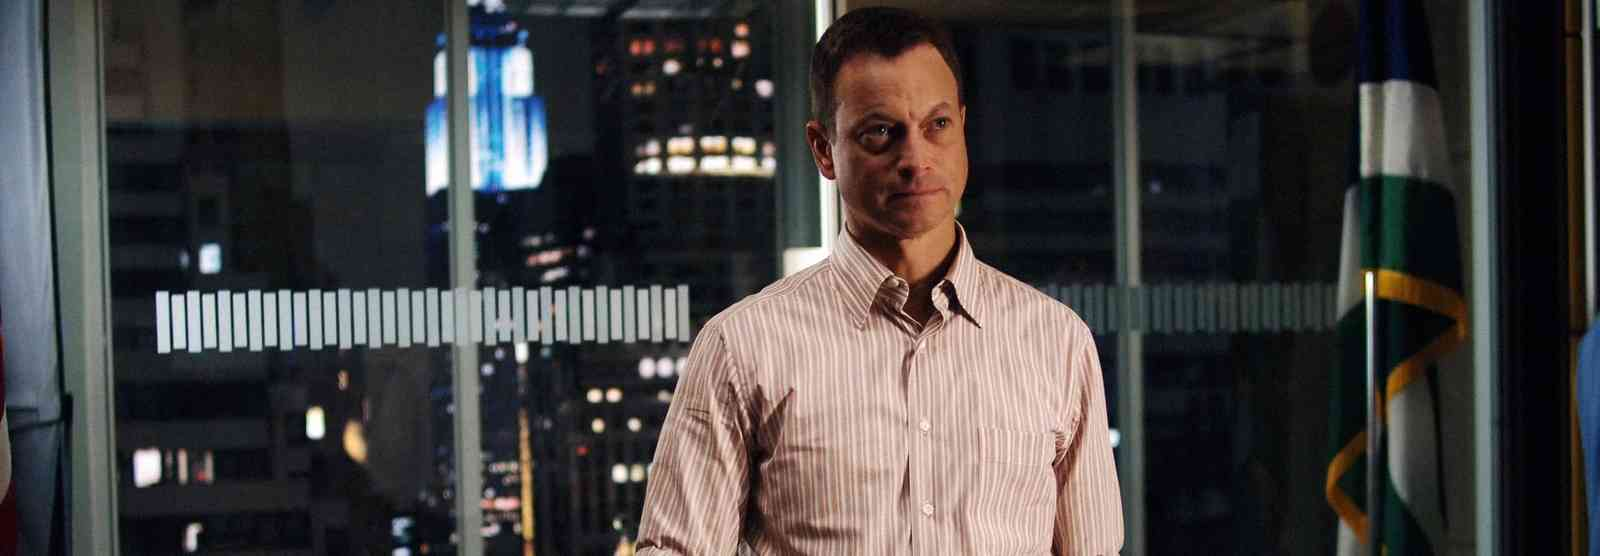 Gary Sinise as Detective Mac Taylor in CSI:NY